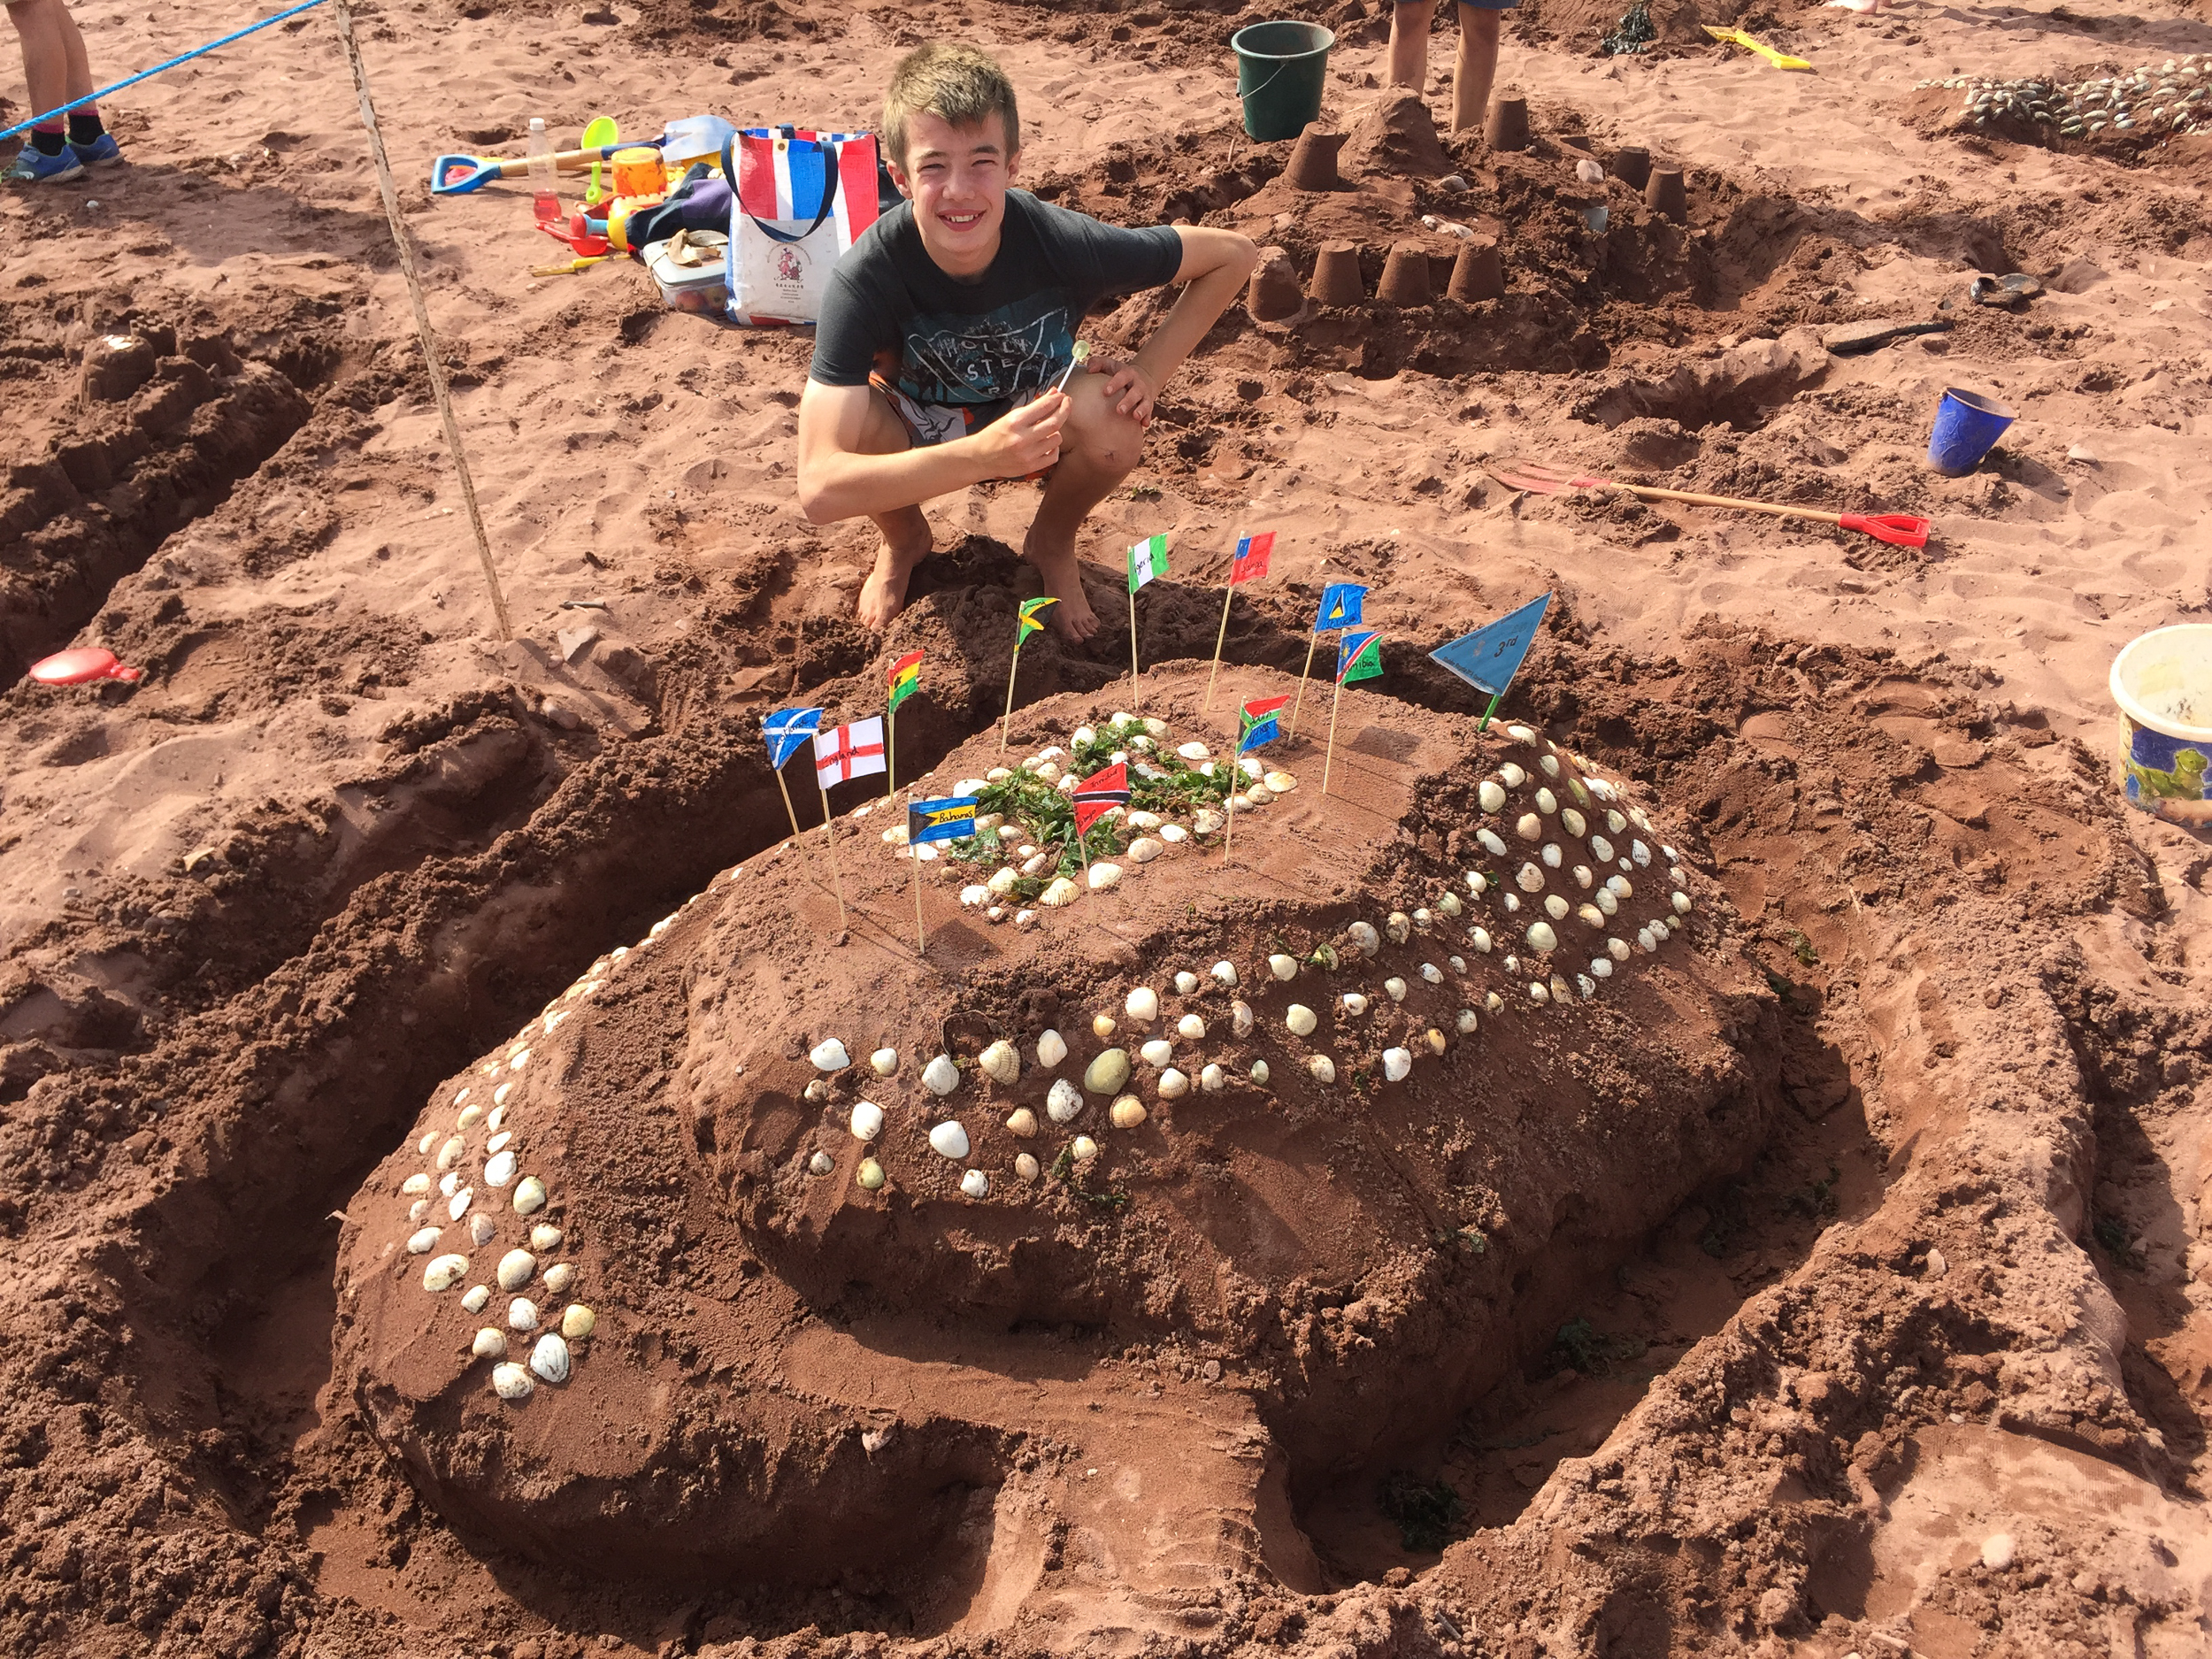 Sandcastle competitions - Categories for under fives, five to seven, eight to ten, eleven to fifteen and for adults. Some of the creations people come up with are incredibly imaginative and creative. Just turn up on the beach with whatever you need to get building!